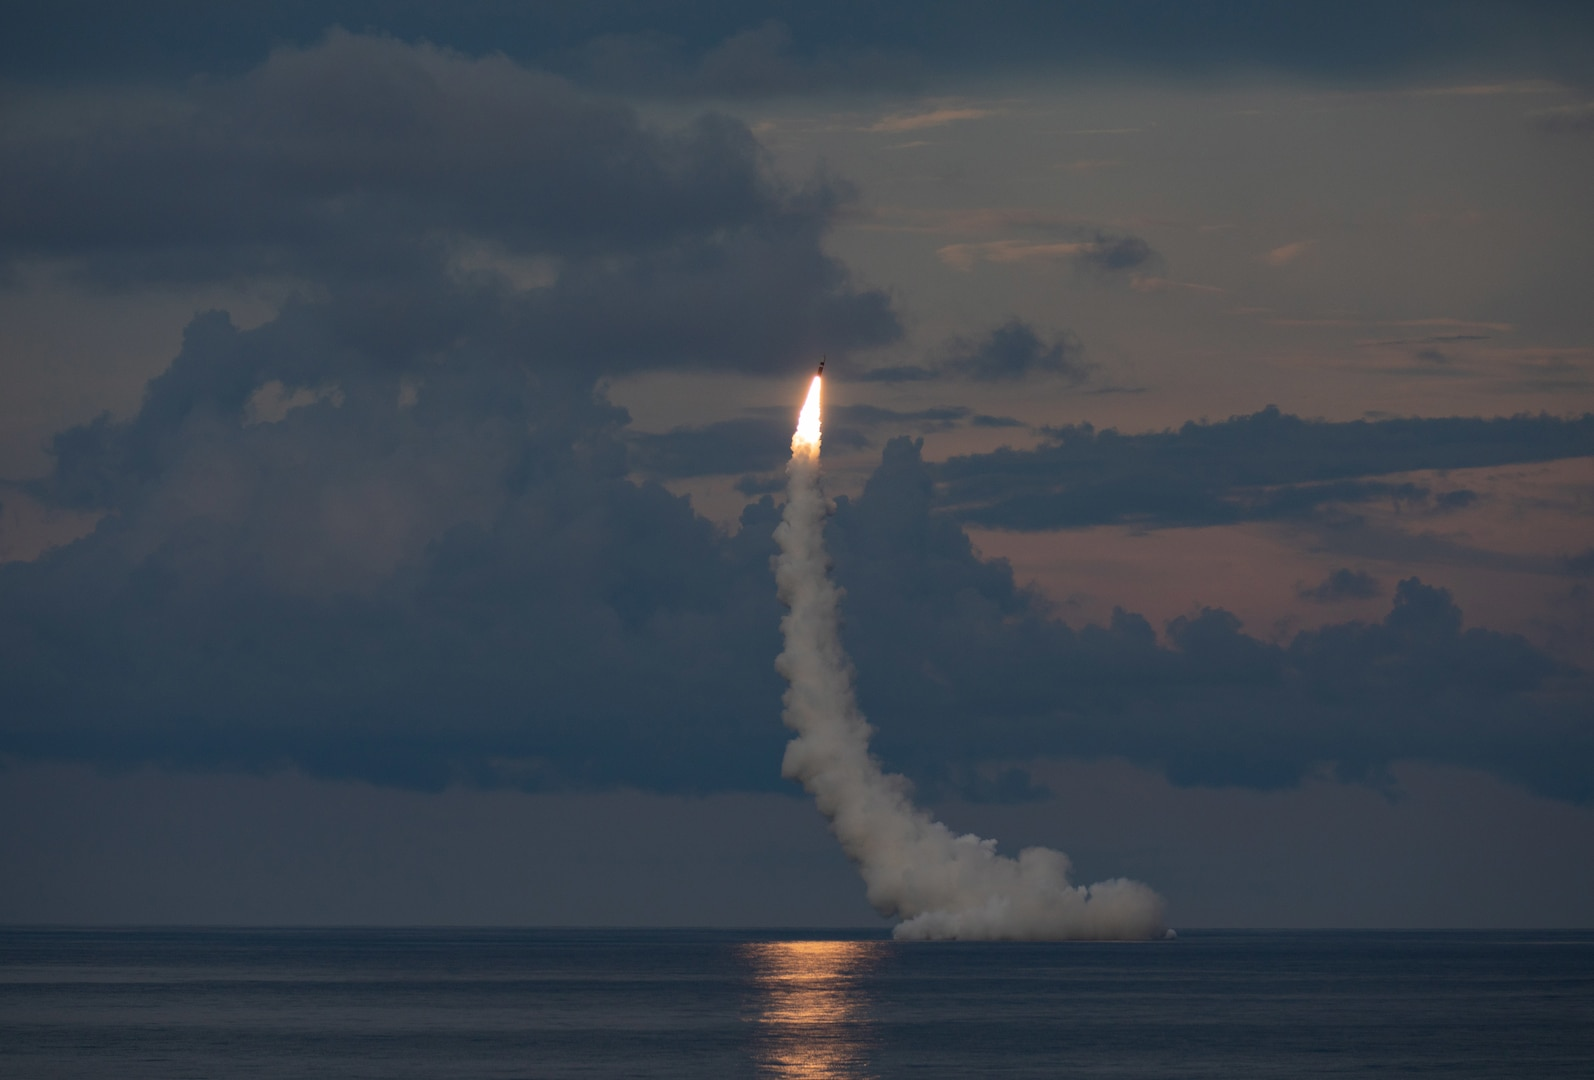 An unarmed Trident II D5LE missile launches from the Ohio-class ballistic missile submarine USS Wyoming (SSBN 742) off the coast of Cape Canaveral, Florida, during Demonstration and Shakedown Operation (DASO) 31.